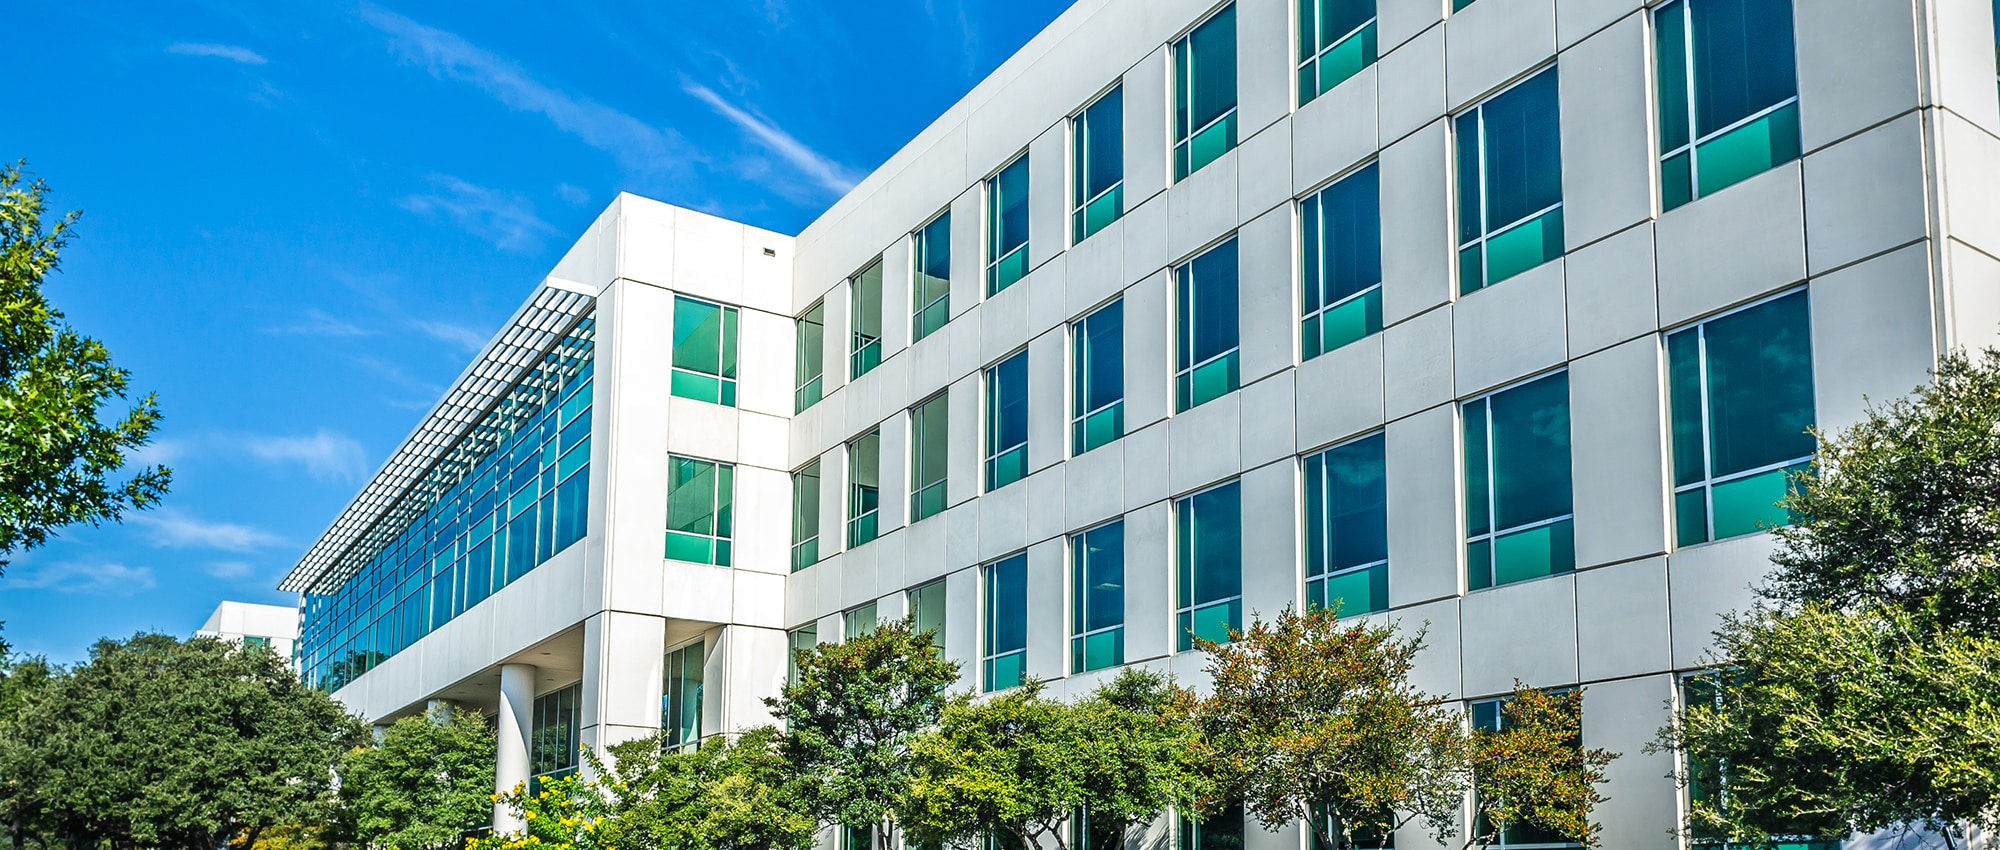 Underwriting Commercial Real Estate Definitions in Austin, Texas